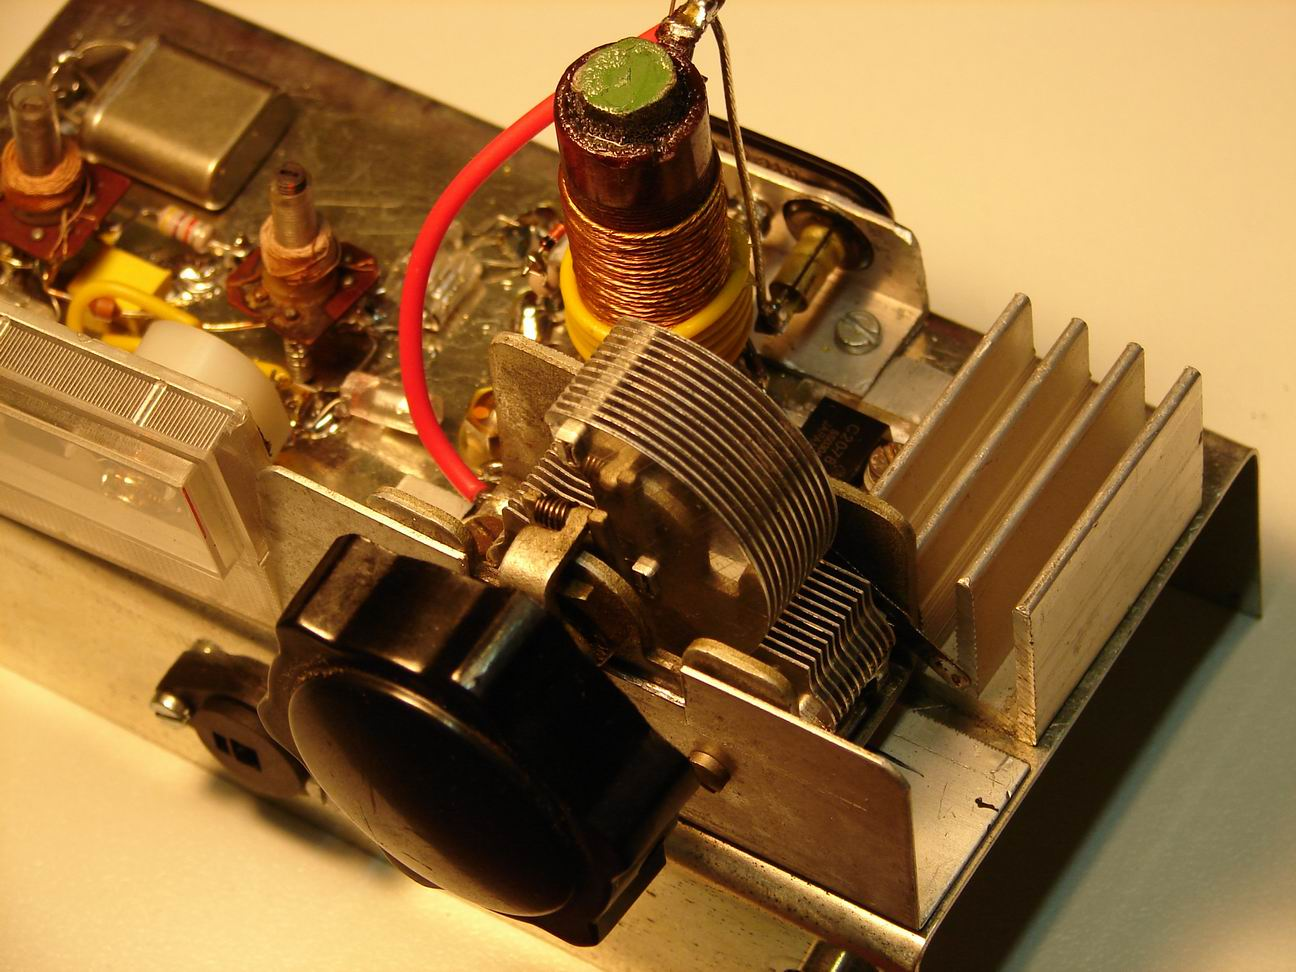 1 Watt Mw Transmitter To Broadcast Sgnal For Old Radios Tv Circuit